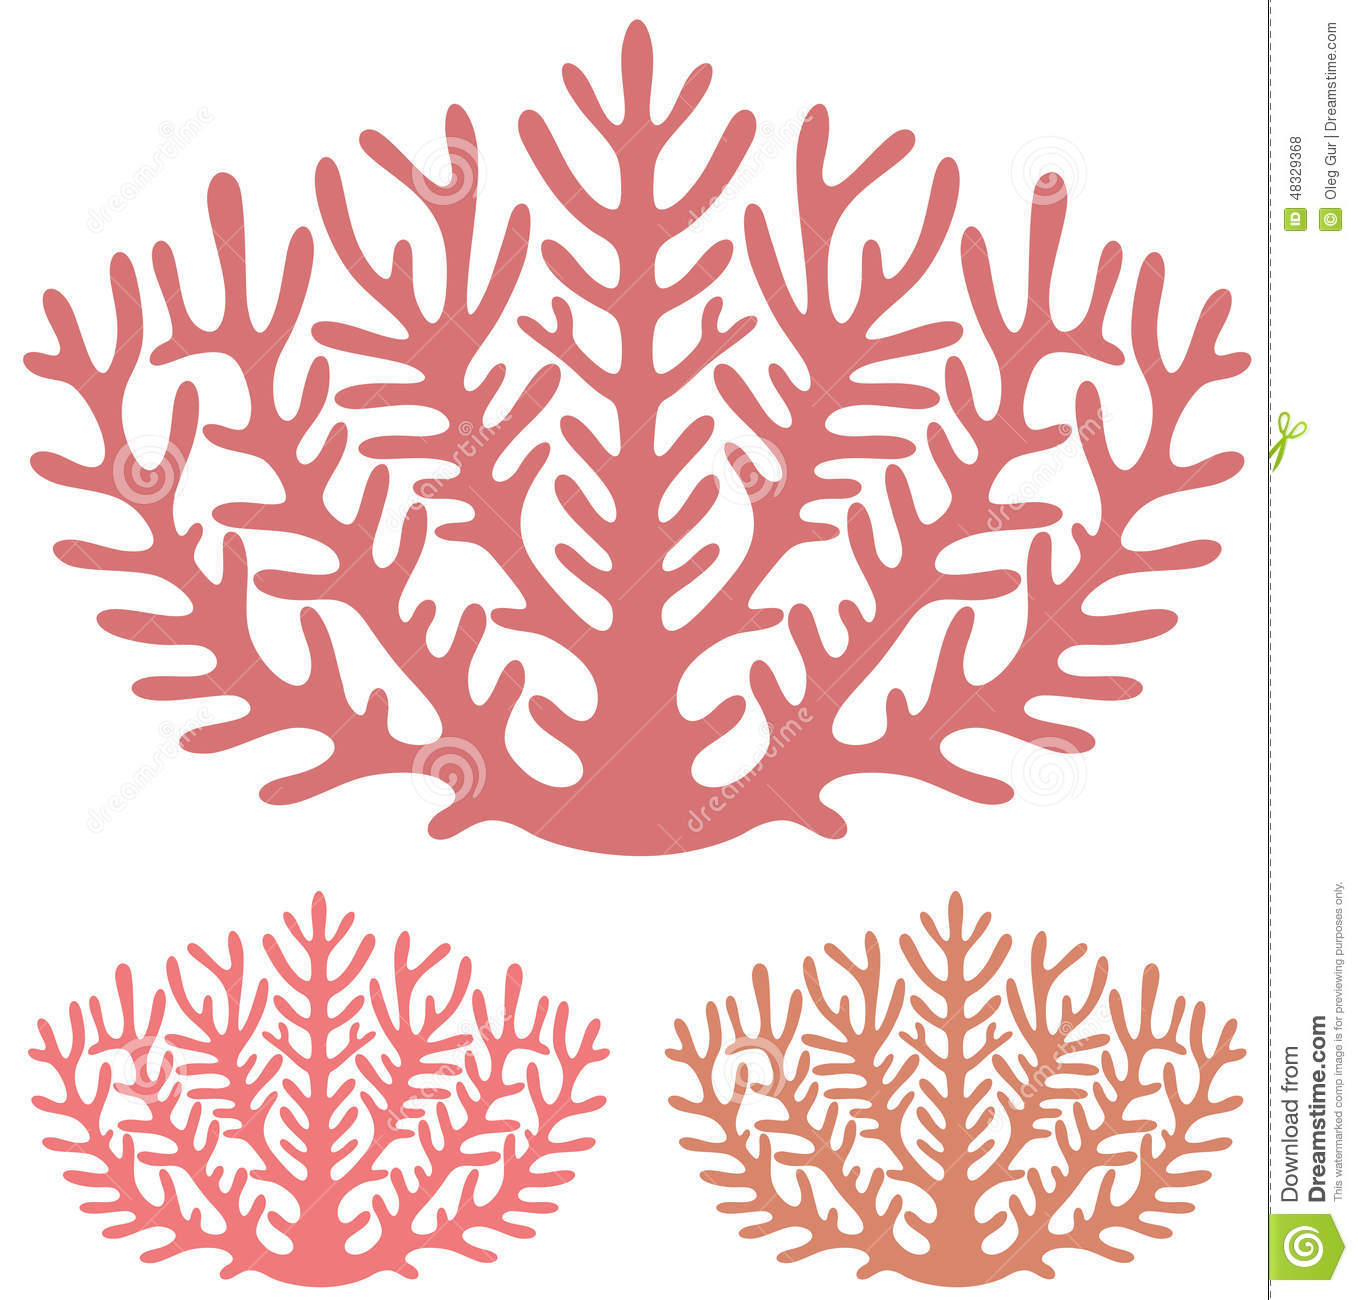 Coral Stock Vector - Image: 48329368